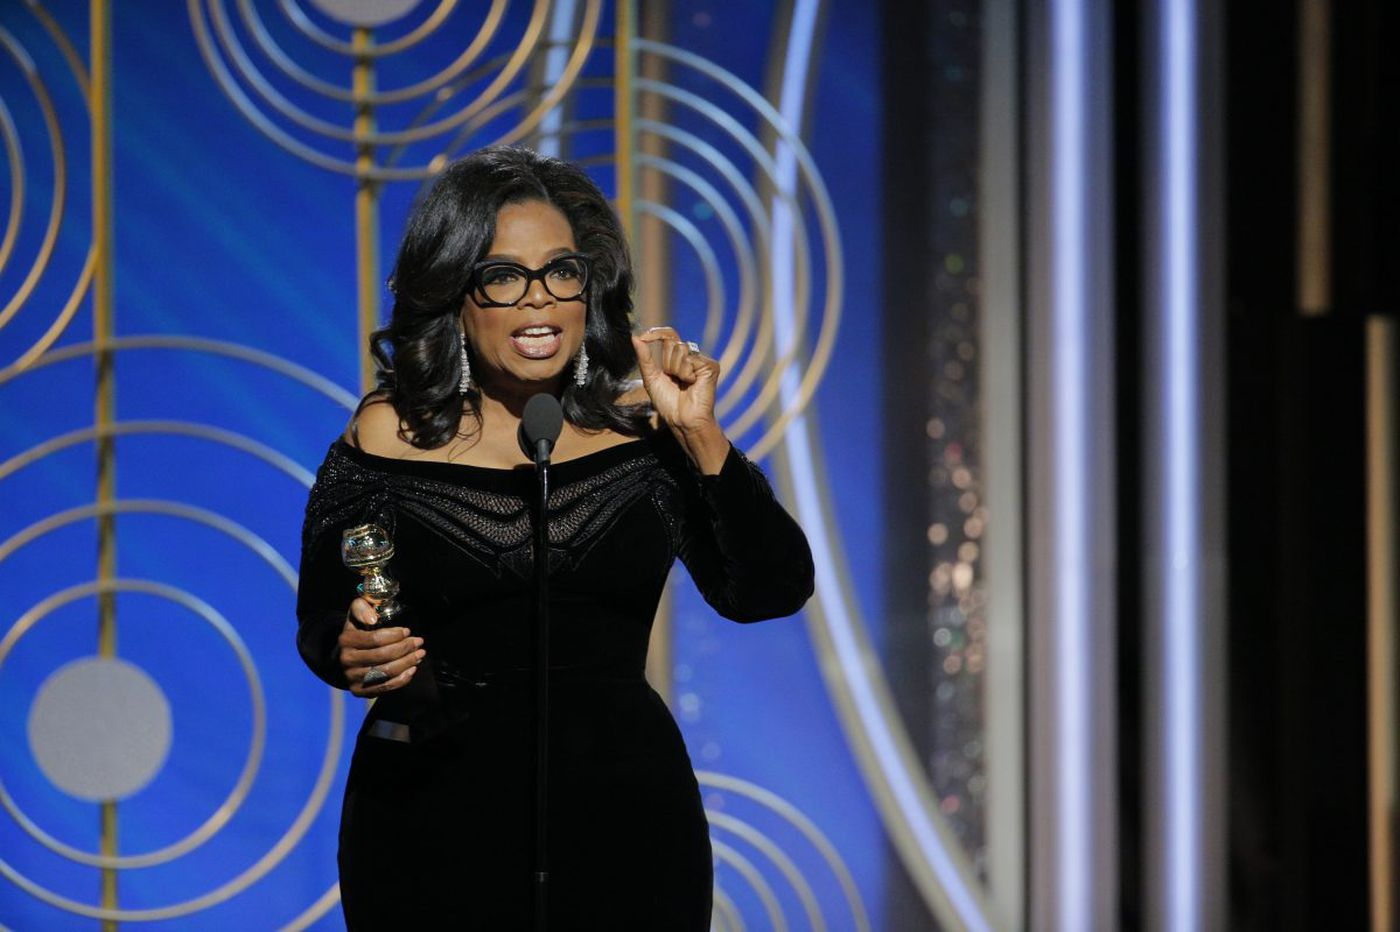 Oprah's Golden Globes speech nailed the true meaning of Time's Up | Elizabeth Wellington